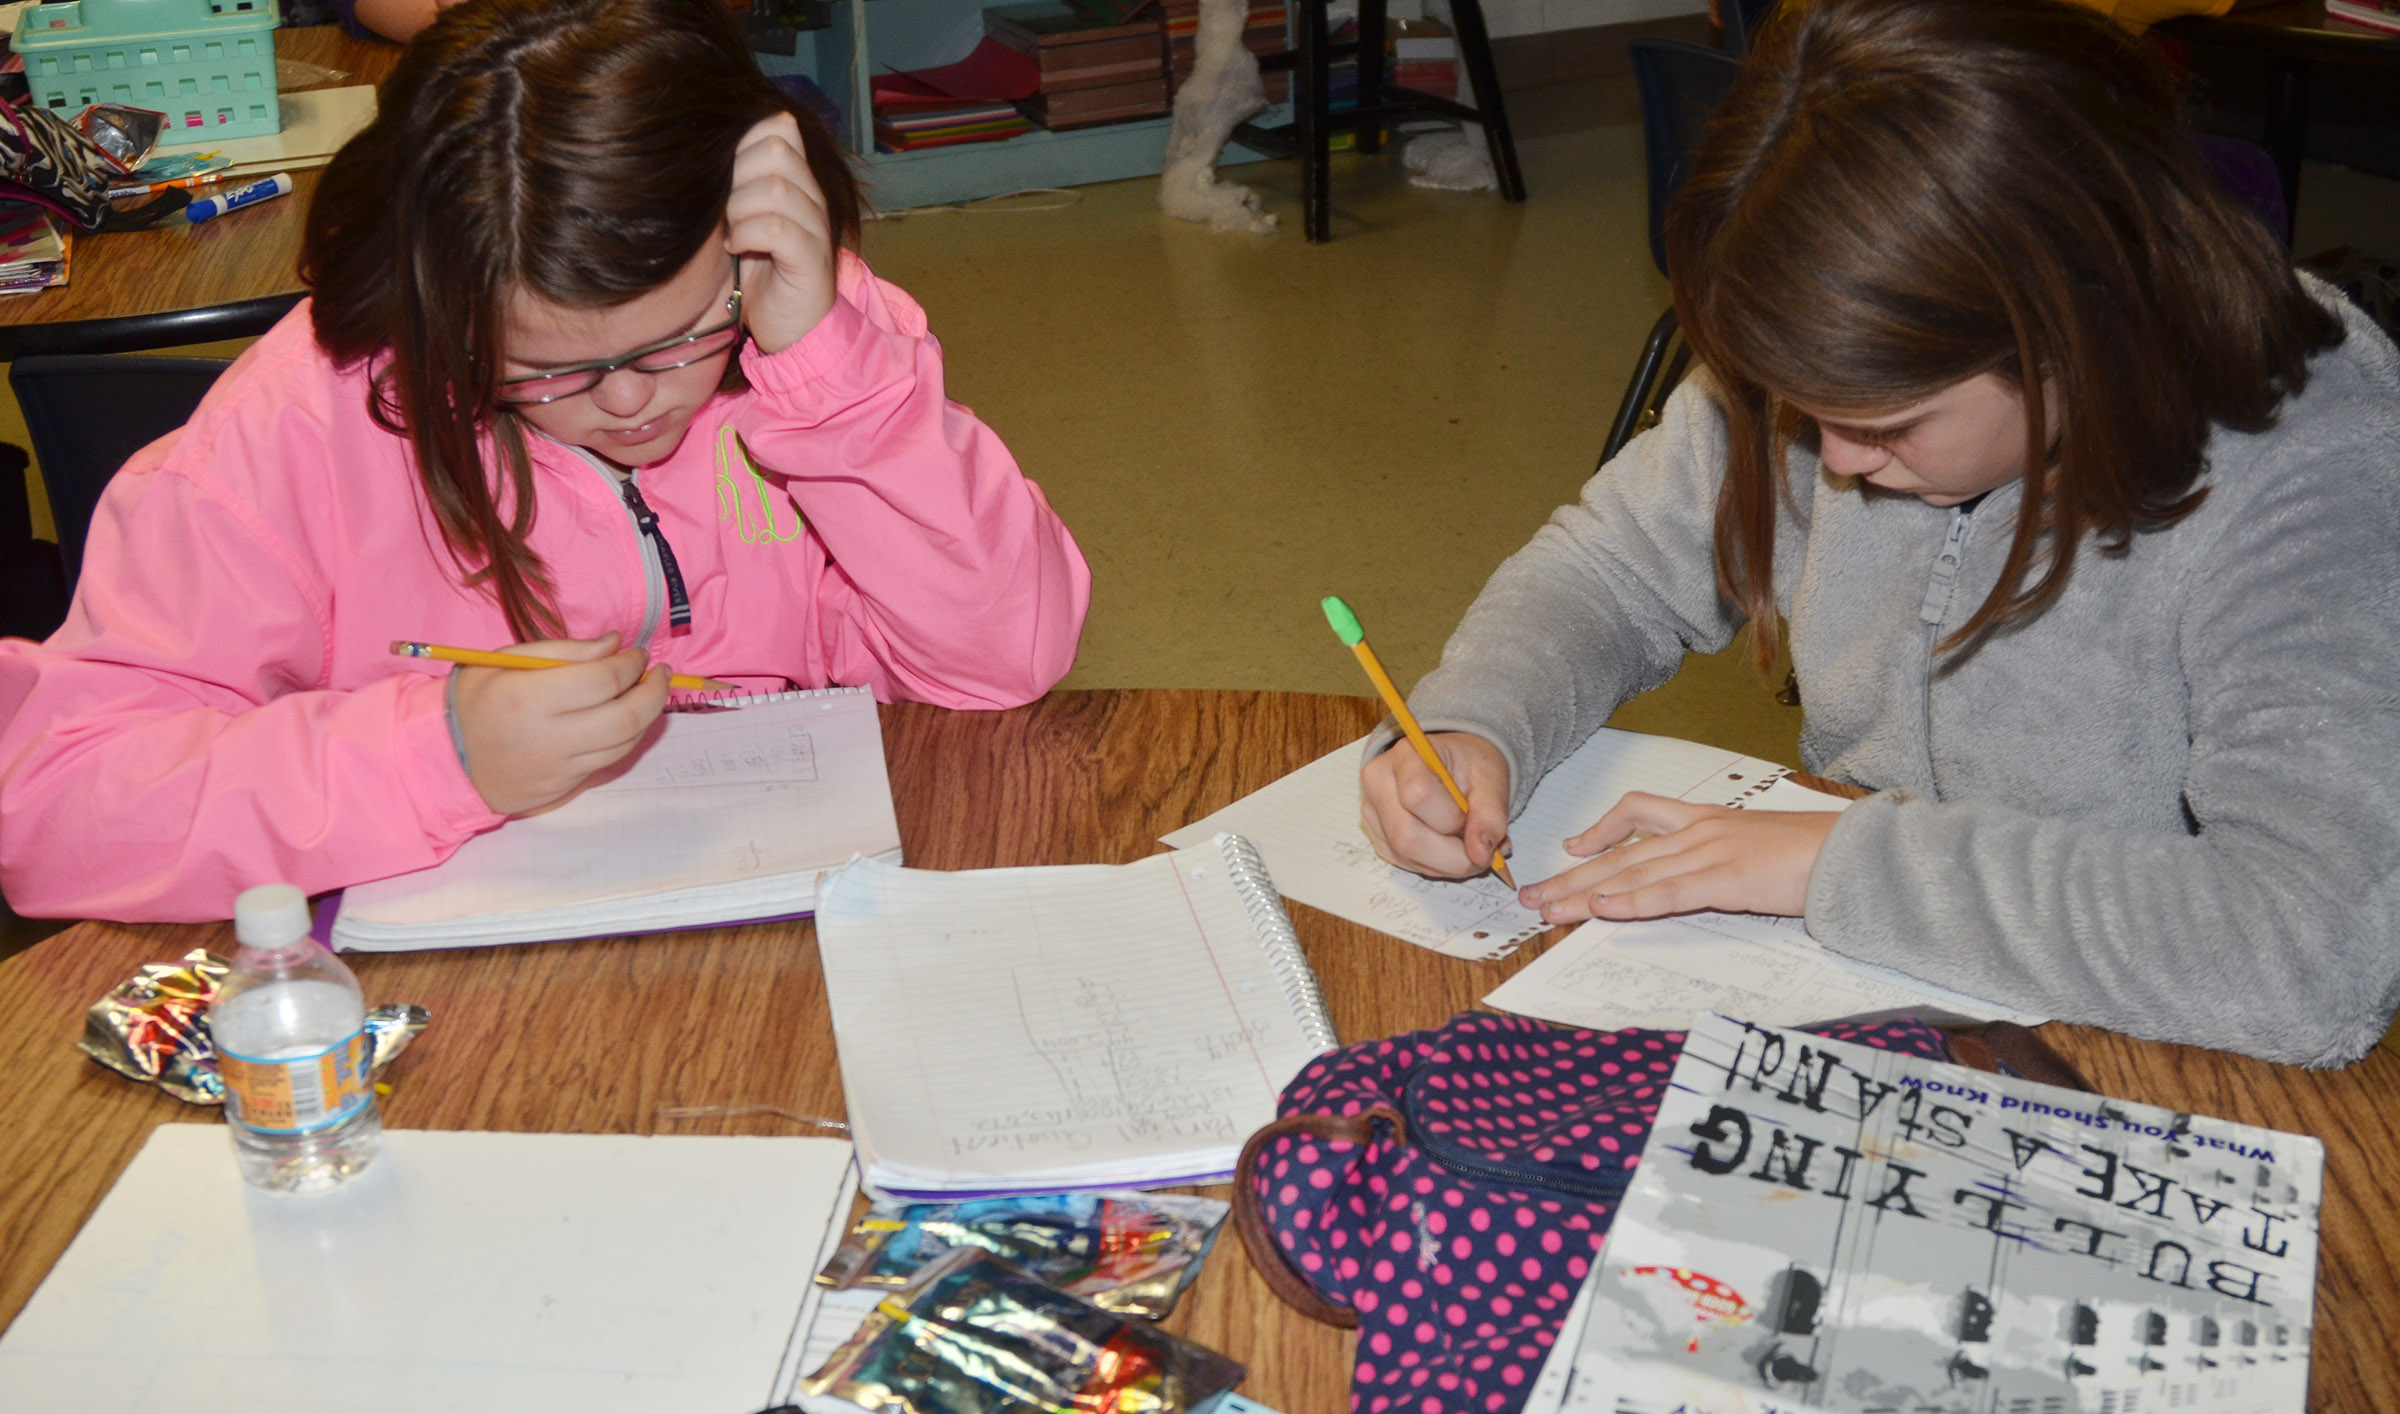 CES fifth-graders Keeley Dicken, at left, and Summer Cothern work on their homework.